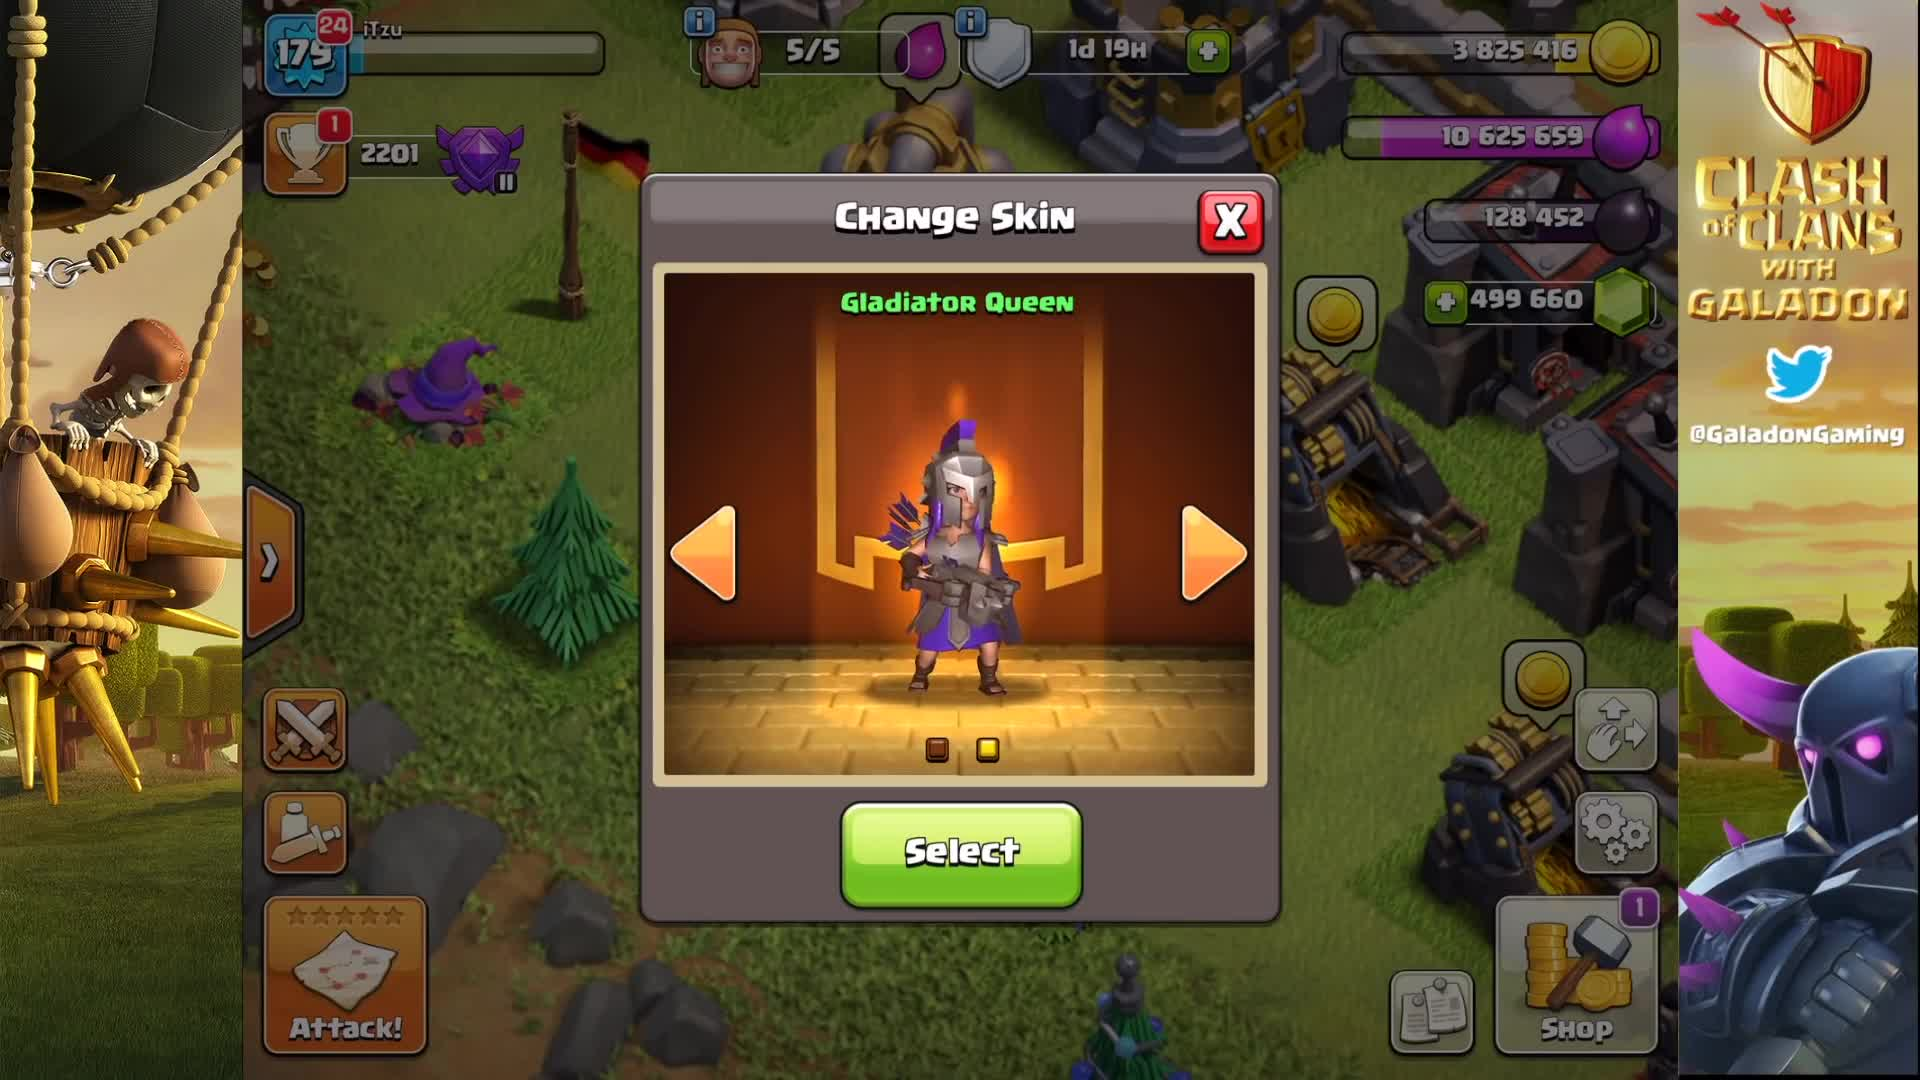 archer queen, clash of clans archer queen, clash of clans gladiator archer queen, clash of clans leak, clash of clans sneak peek, clash of clans update, galadon clash of clans, galadon gaming, gladiator archer queen skin, new archer queen skin, Gladiator Archer Queen Skin - Gold Pass 2 Reward GIFs